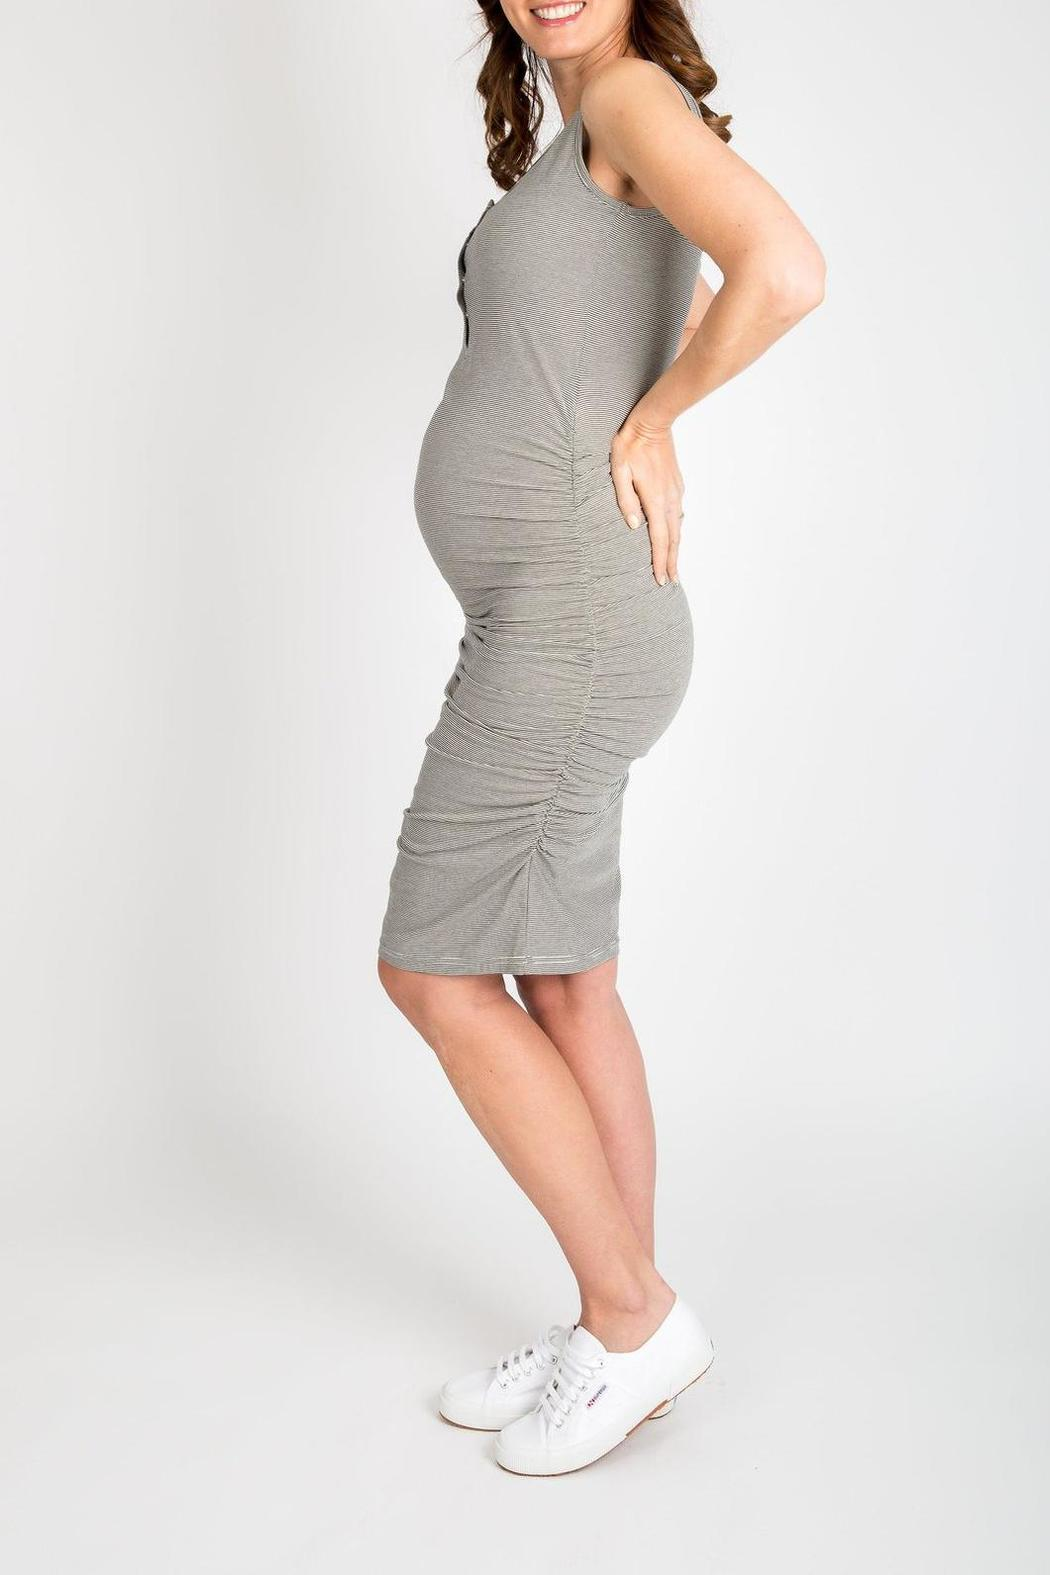 NOM Maternity Snap Tank Dress - Front Full Image